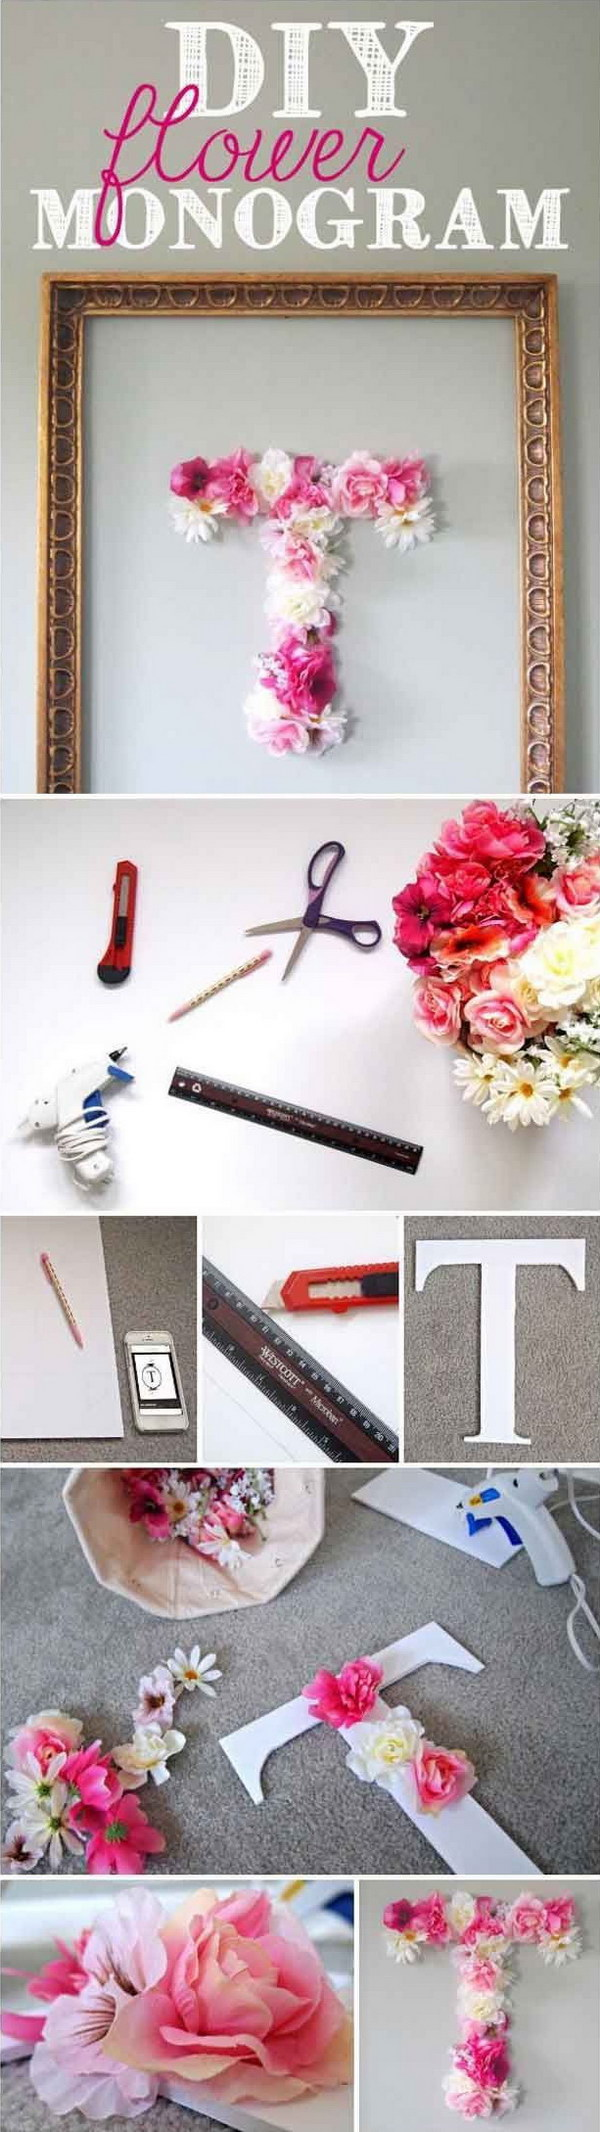 25+ DIY Ideas & Tutorials for Teenage Girl's Room ... on Decoration Room For Girl  id=88410